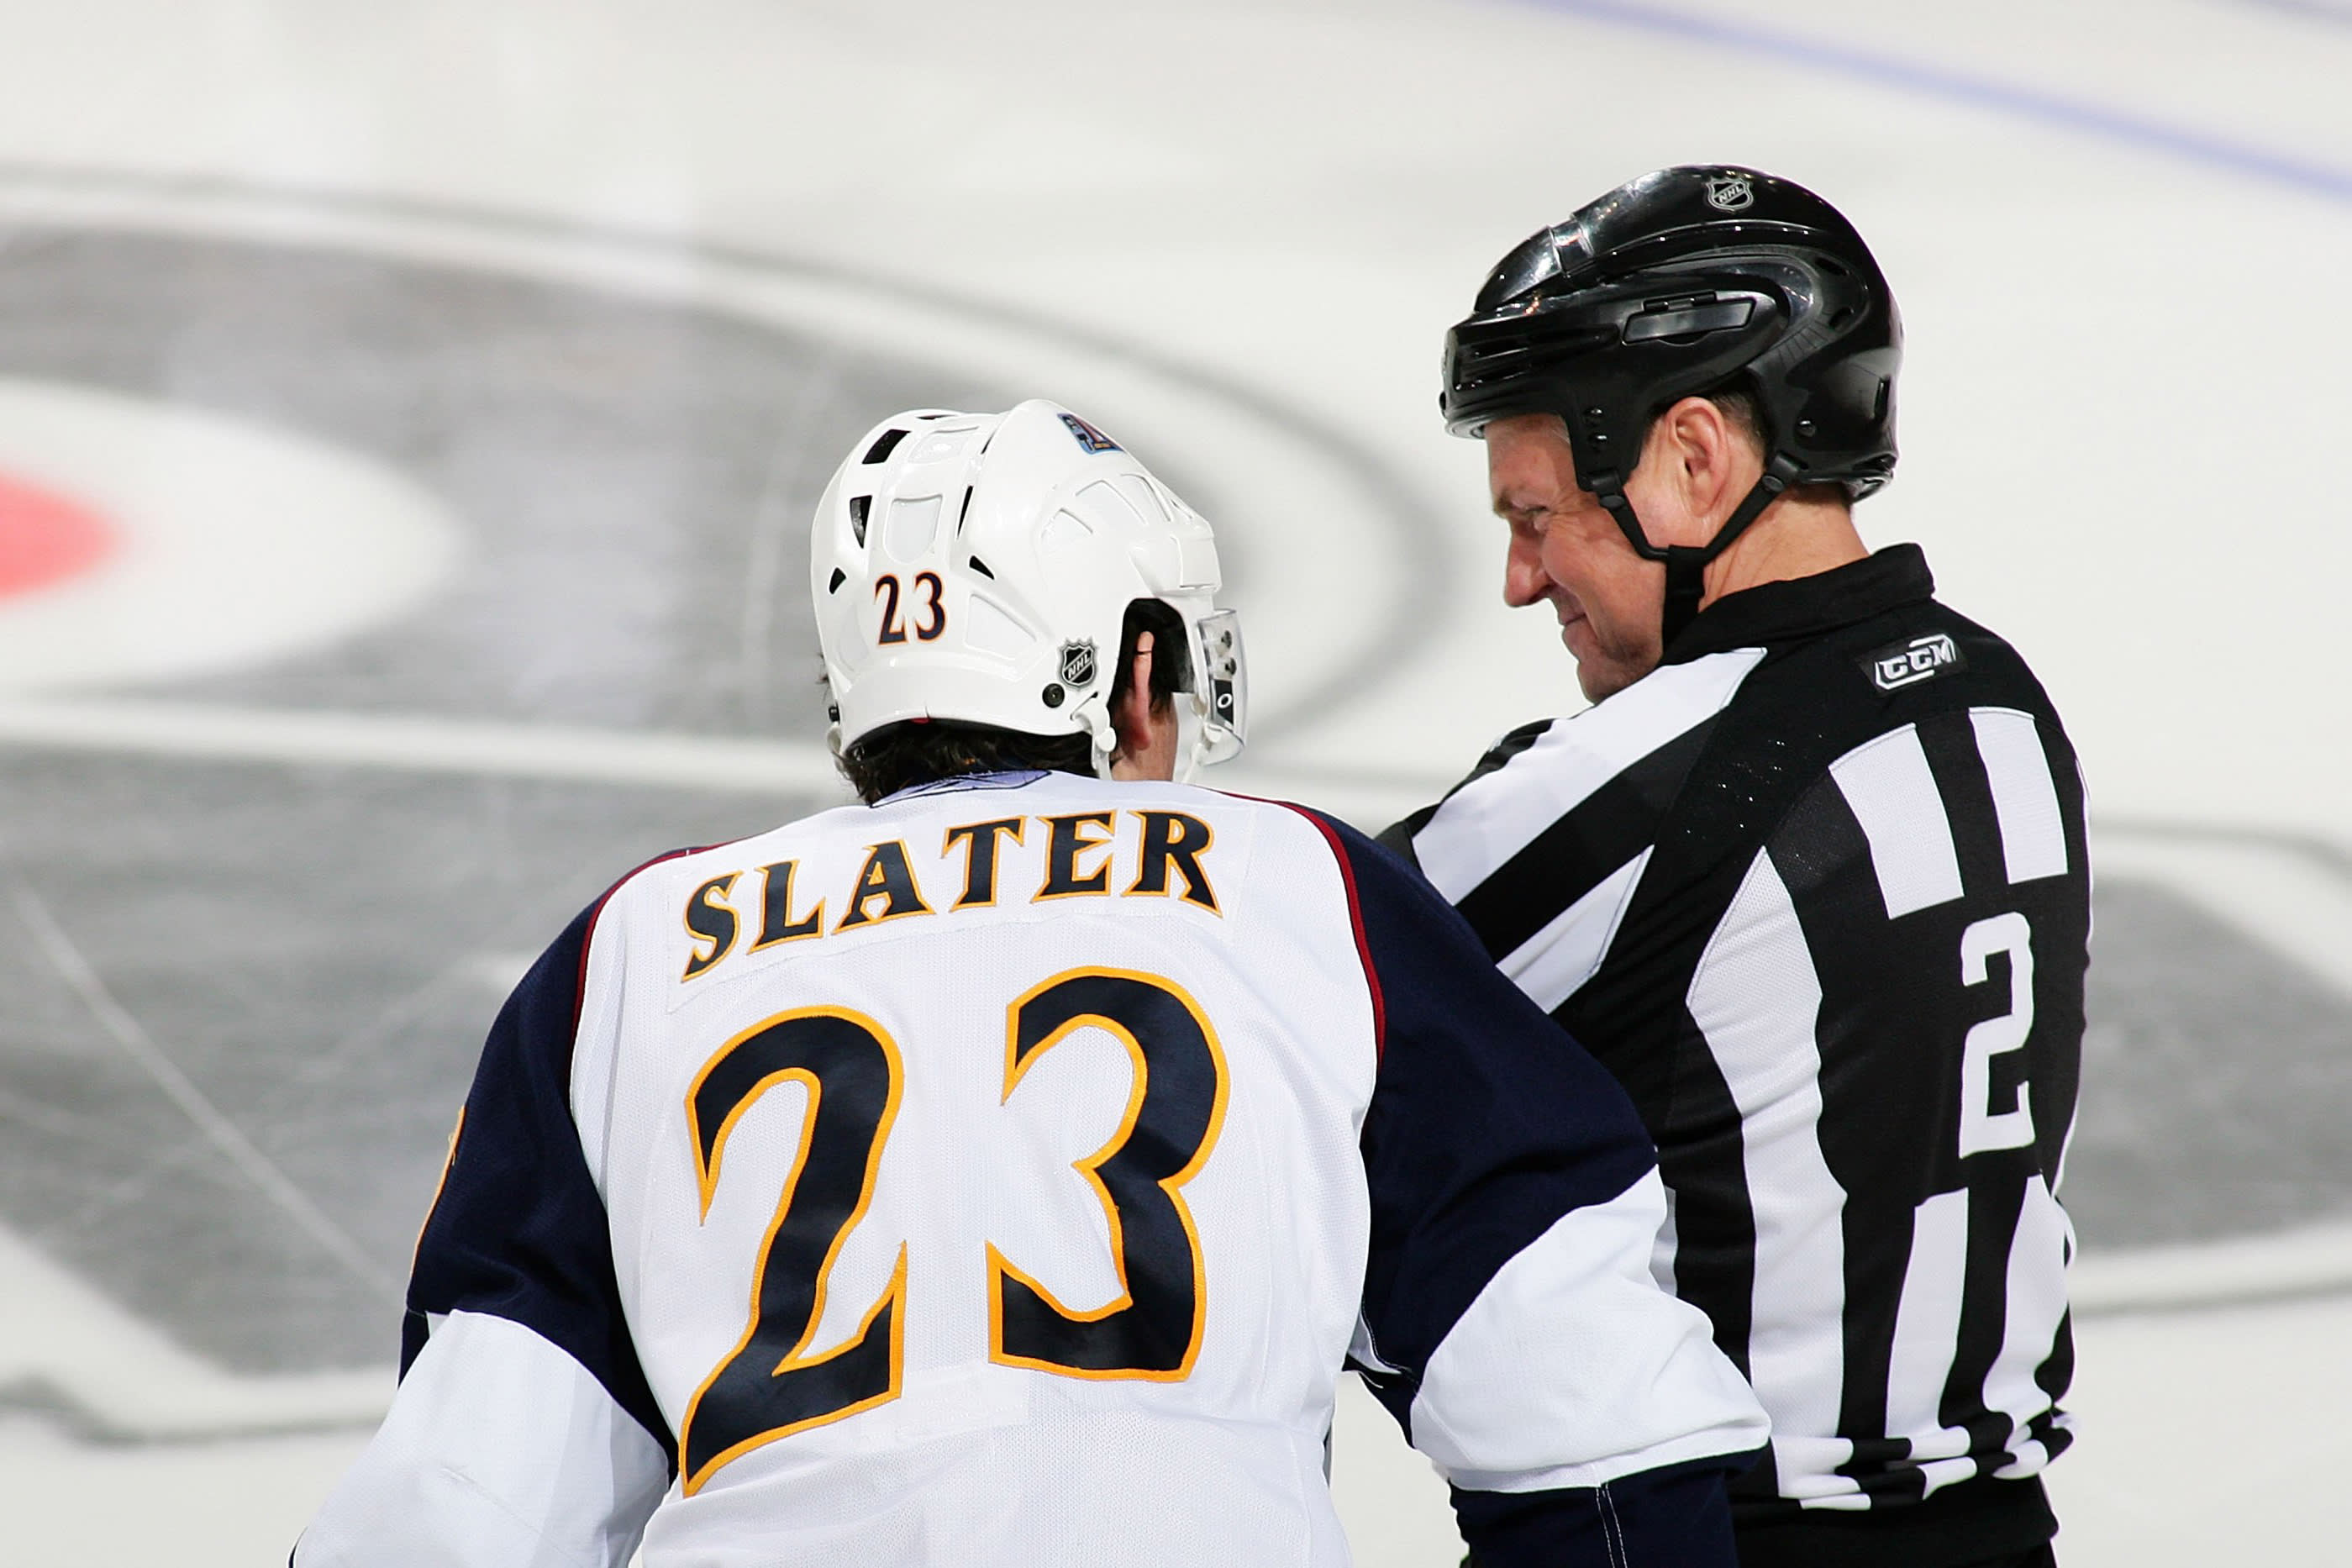 PHILADELPHIA - MARCH 21: Referee Kerry Fraser #2 exchanges a few words with Jim Slater #23 of the Atlanta Thrashers during a game against the Philadelphia Flyers on March 21, 2010 at the Wachovia Center in Philadelphia, Pennsylvania. (Photo by Len Redkoles/NHLI via Getty Images)